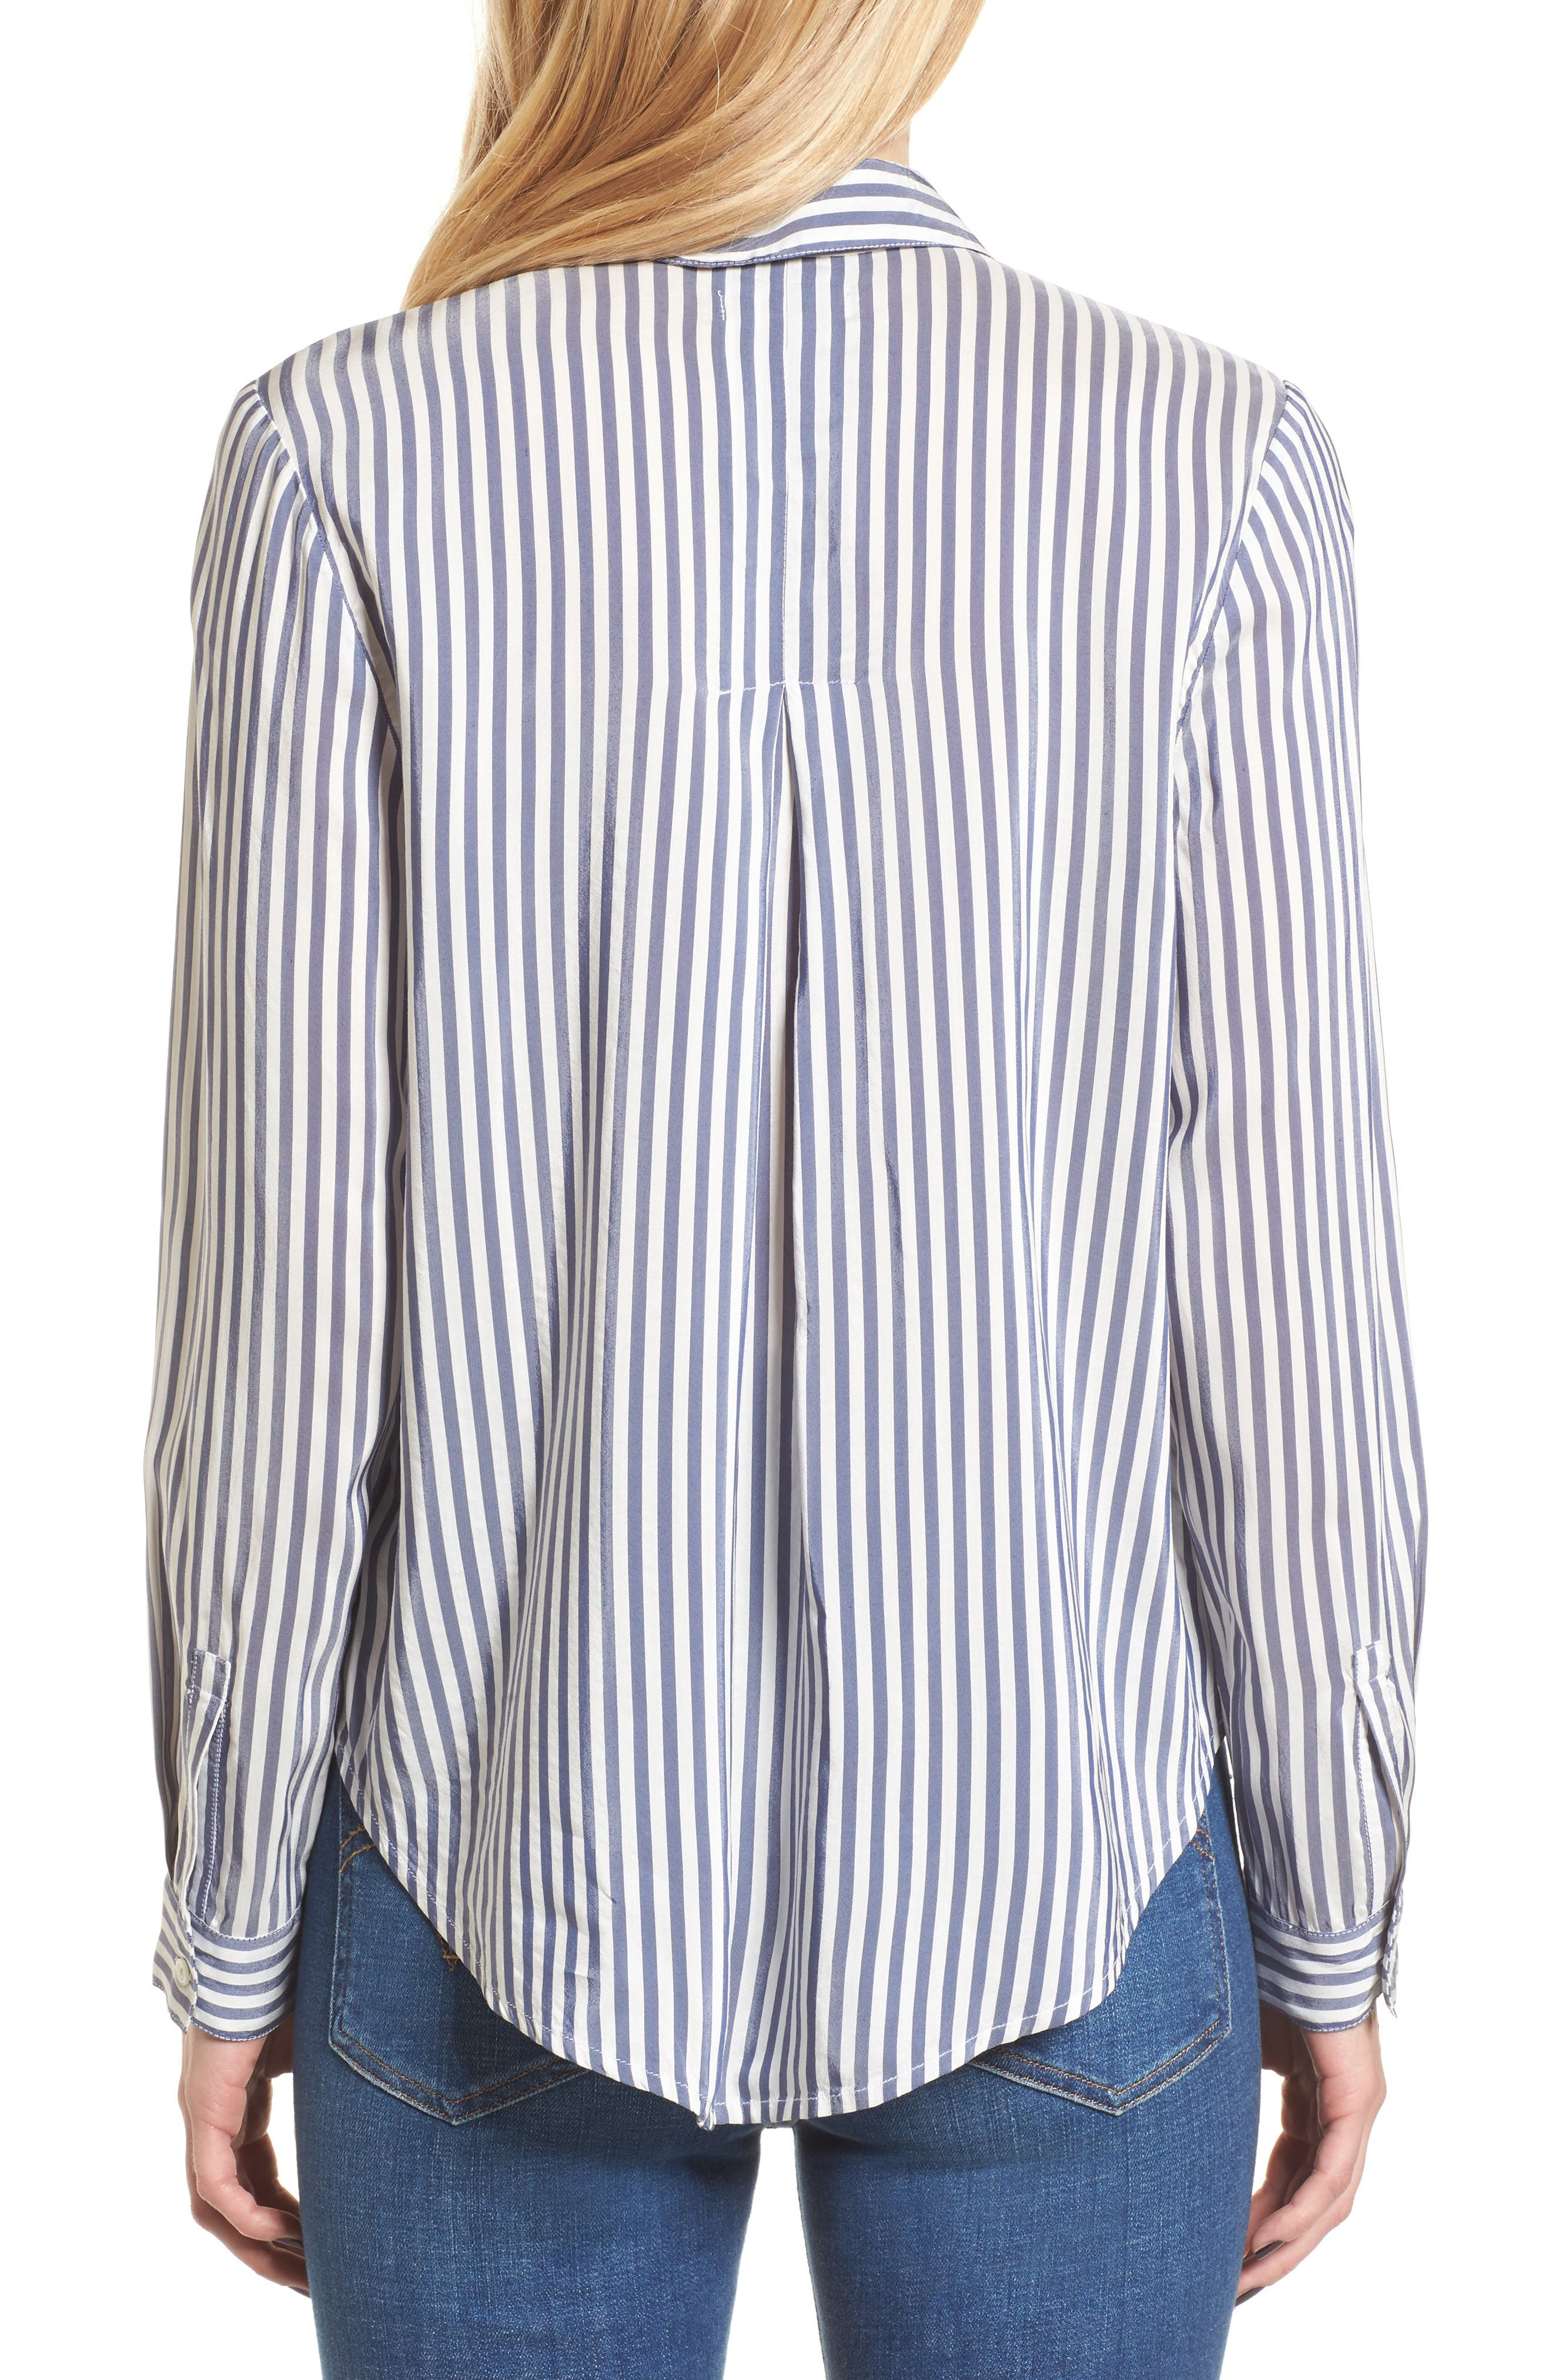 Stripe Shirt,                             Alternate thumbnail 2, color,                             Navy Evening Lucca Stripe